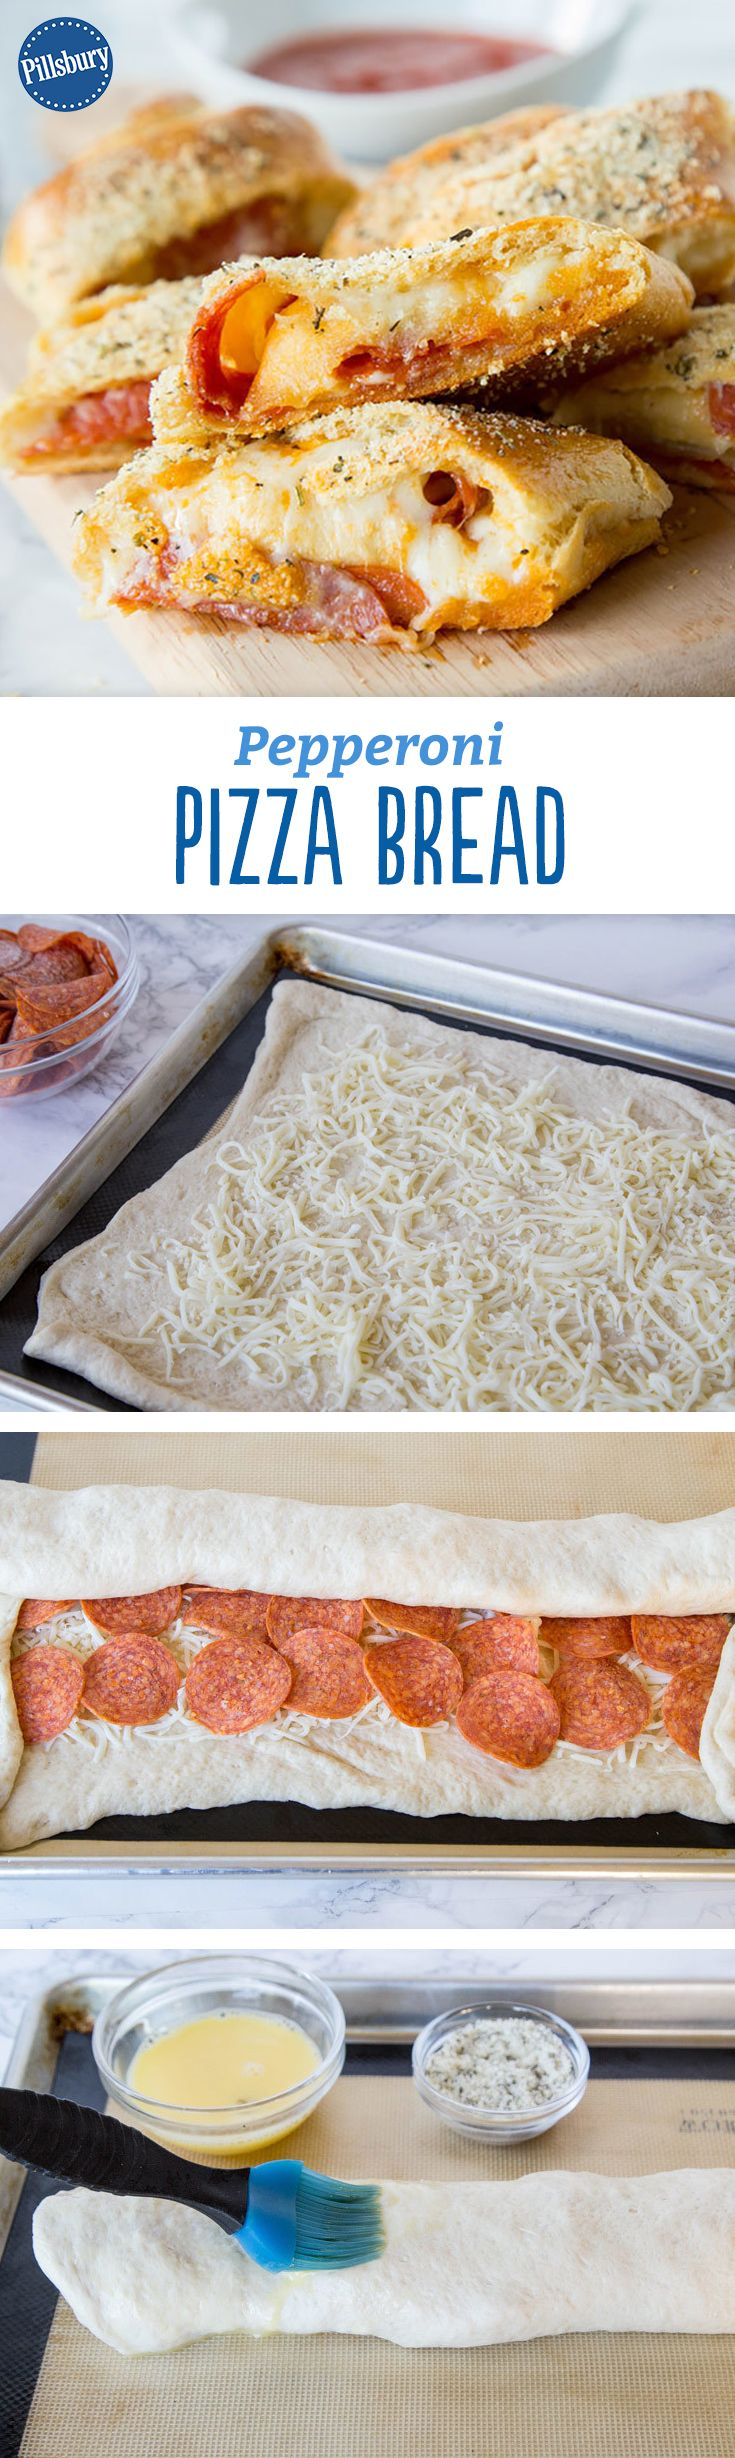 No need to order delivery. This recipe rolls up all the best parts of pizza and cheesy bread in tasty crescent dough! This easy pepperoni pizza bread makes a delicious dinner or fun appetizer the whole family will love.